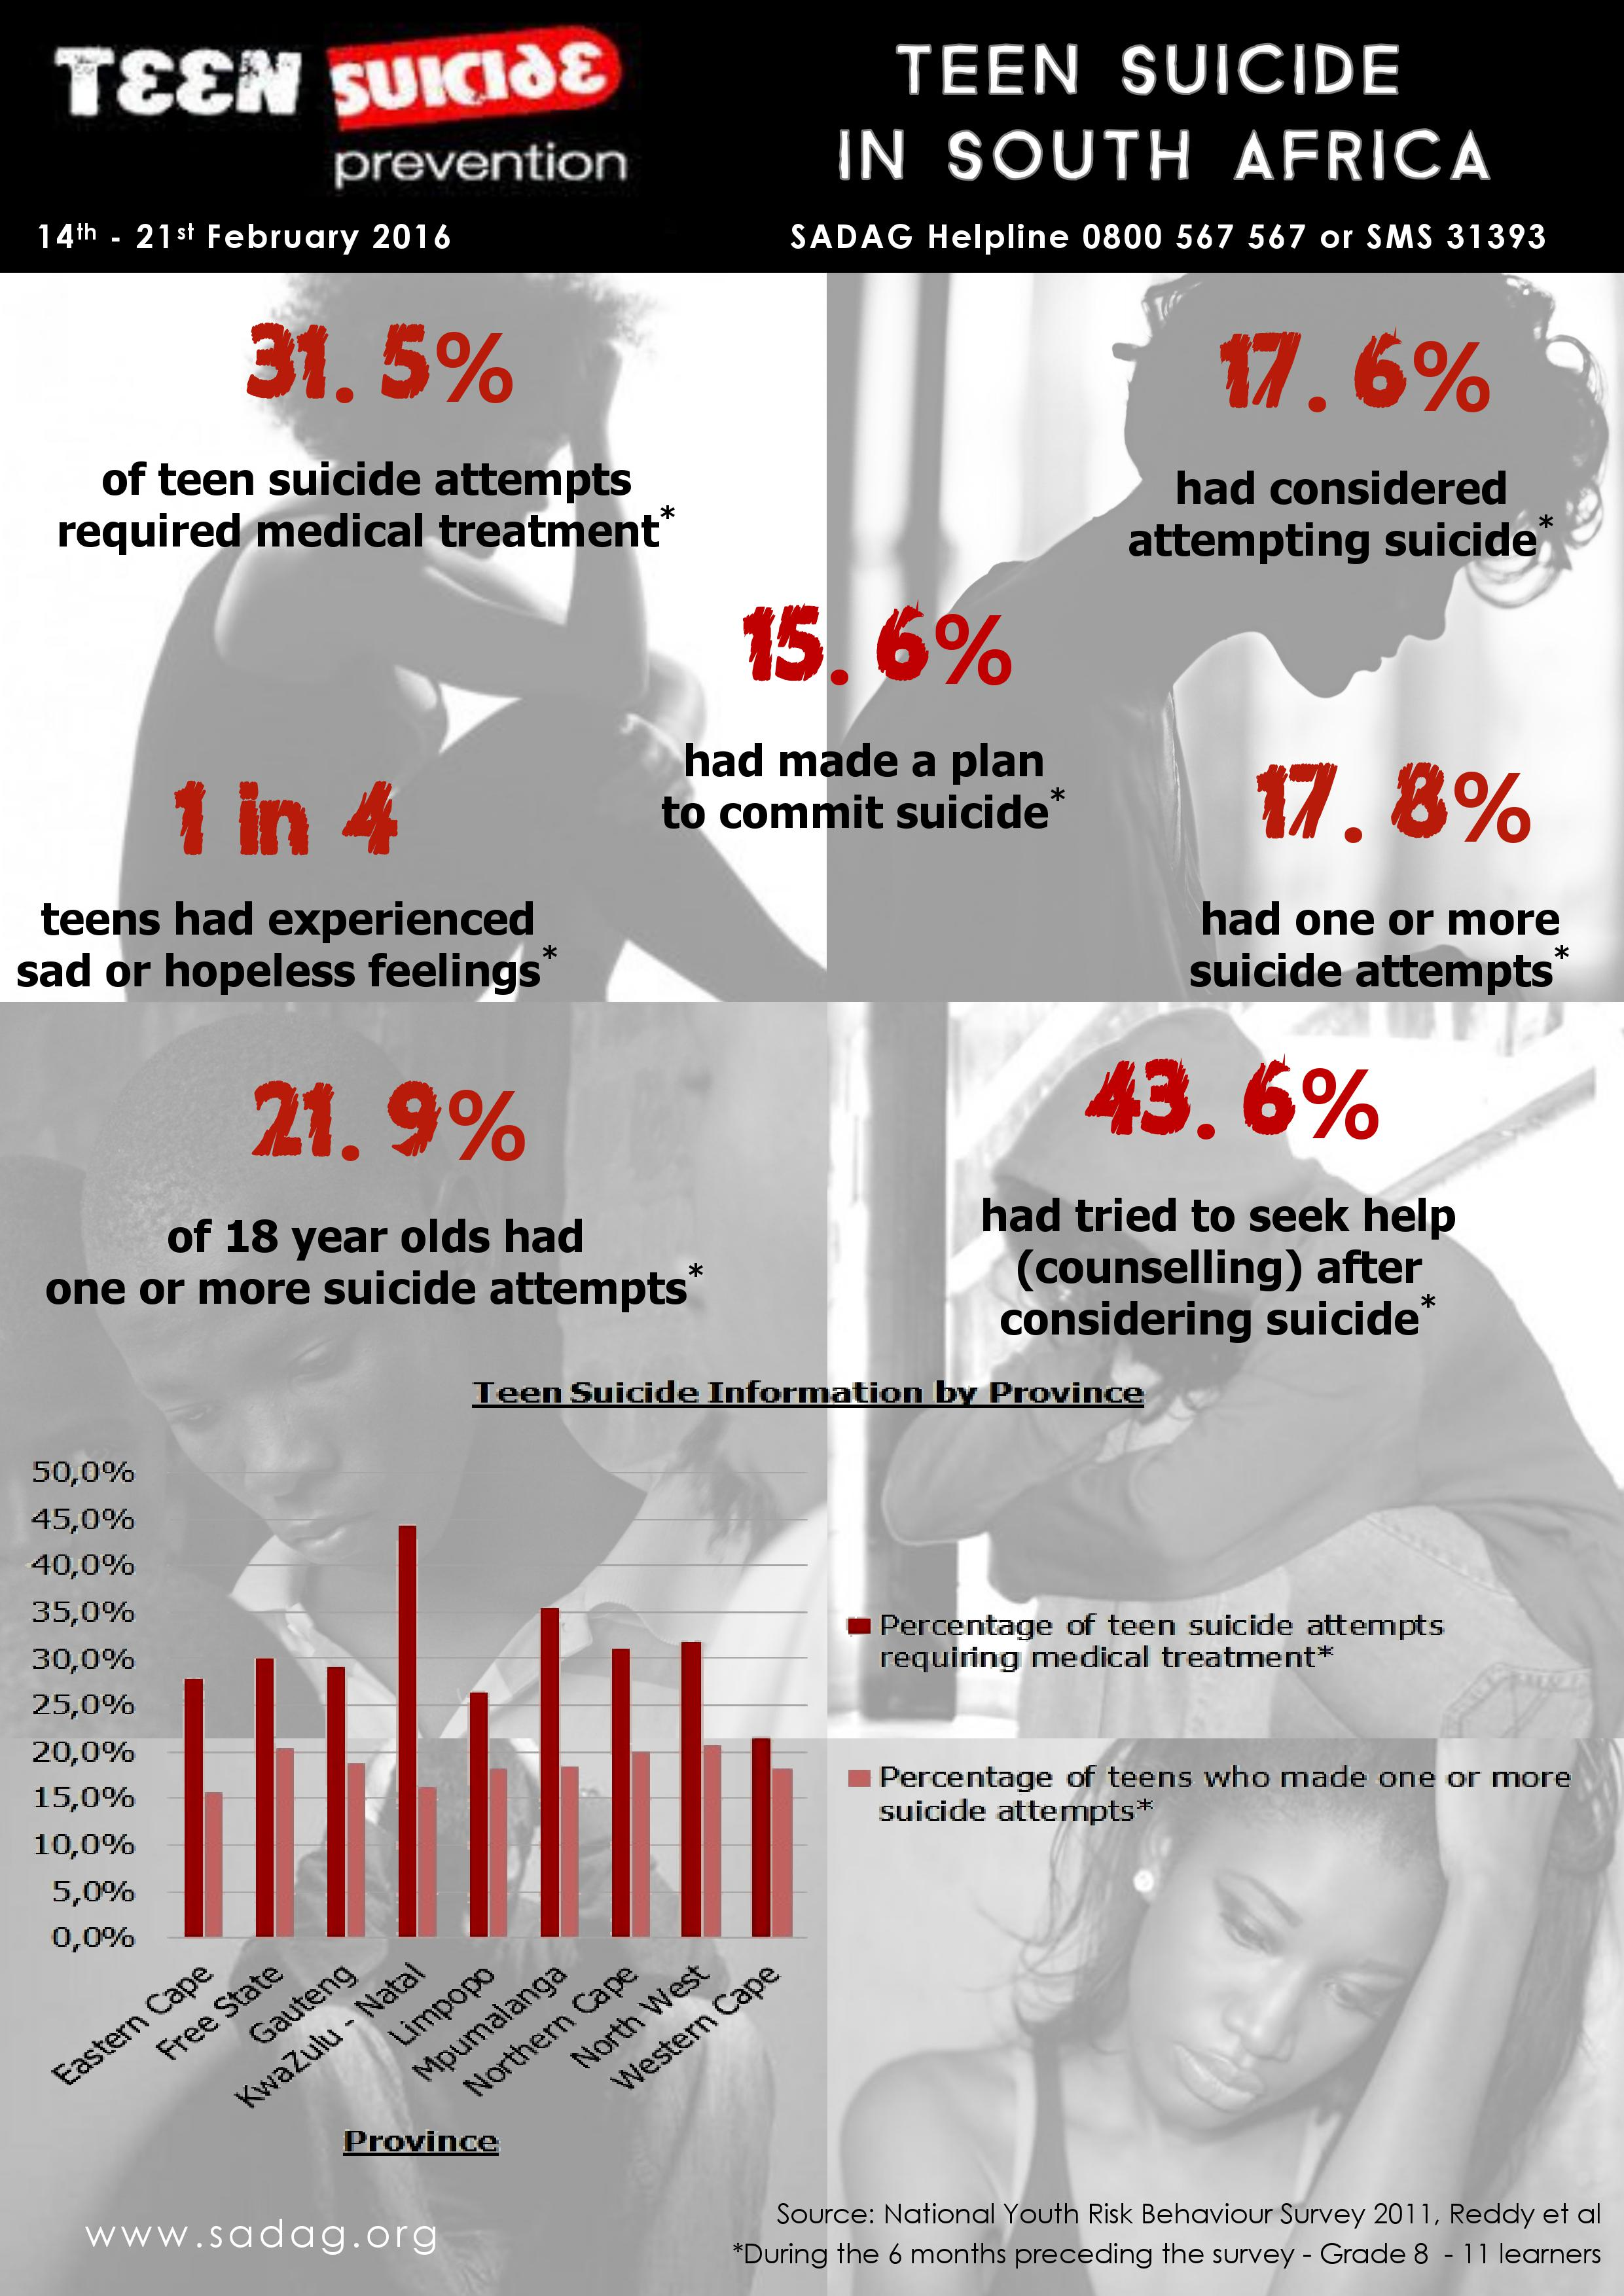 Teen Suicide Infographic 2016 images